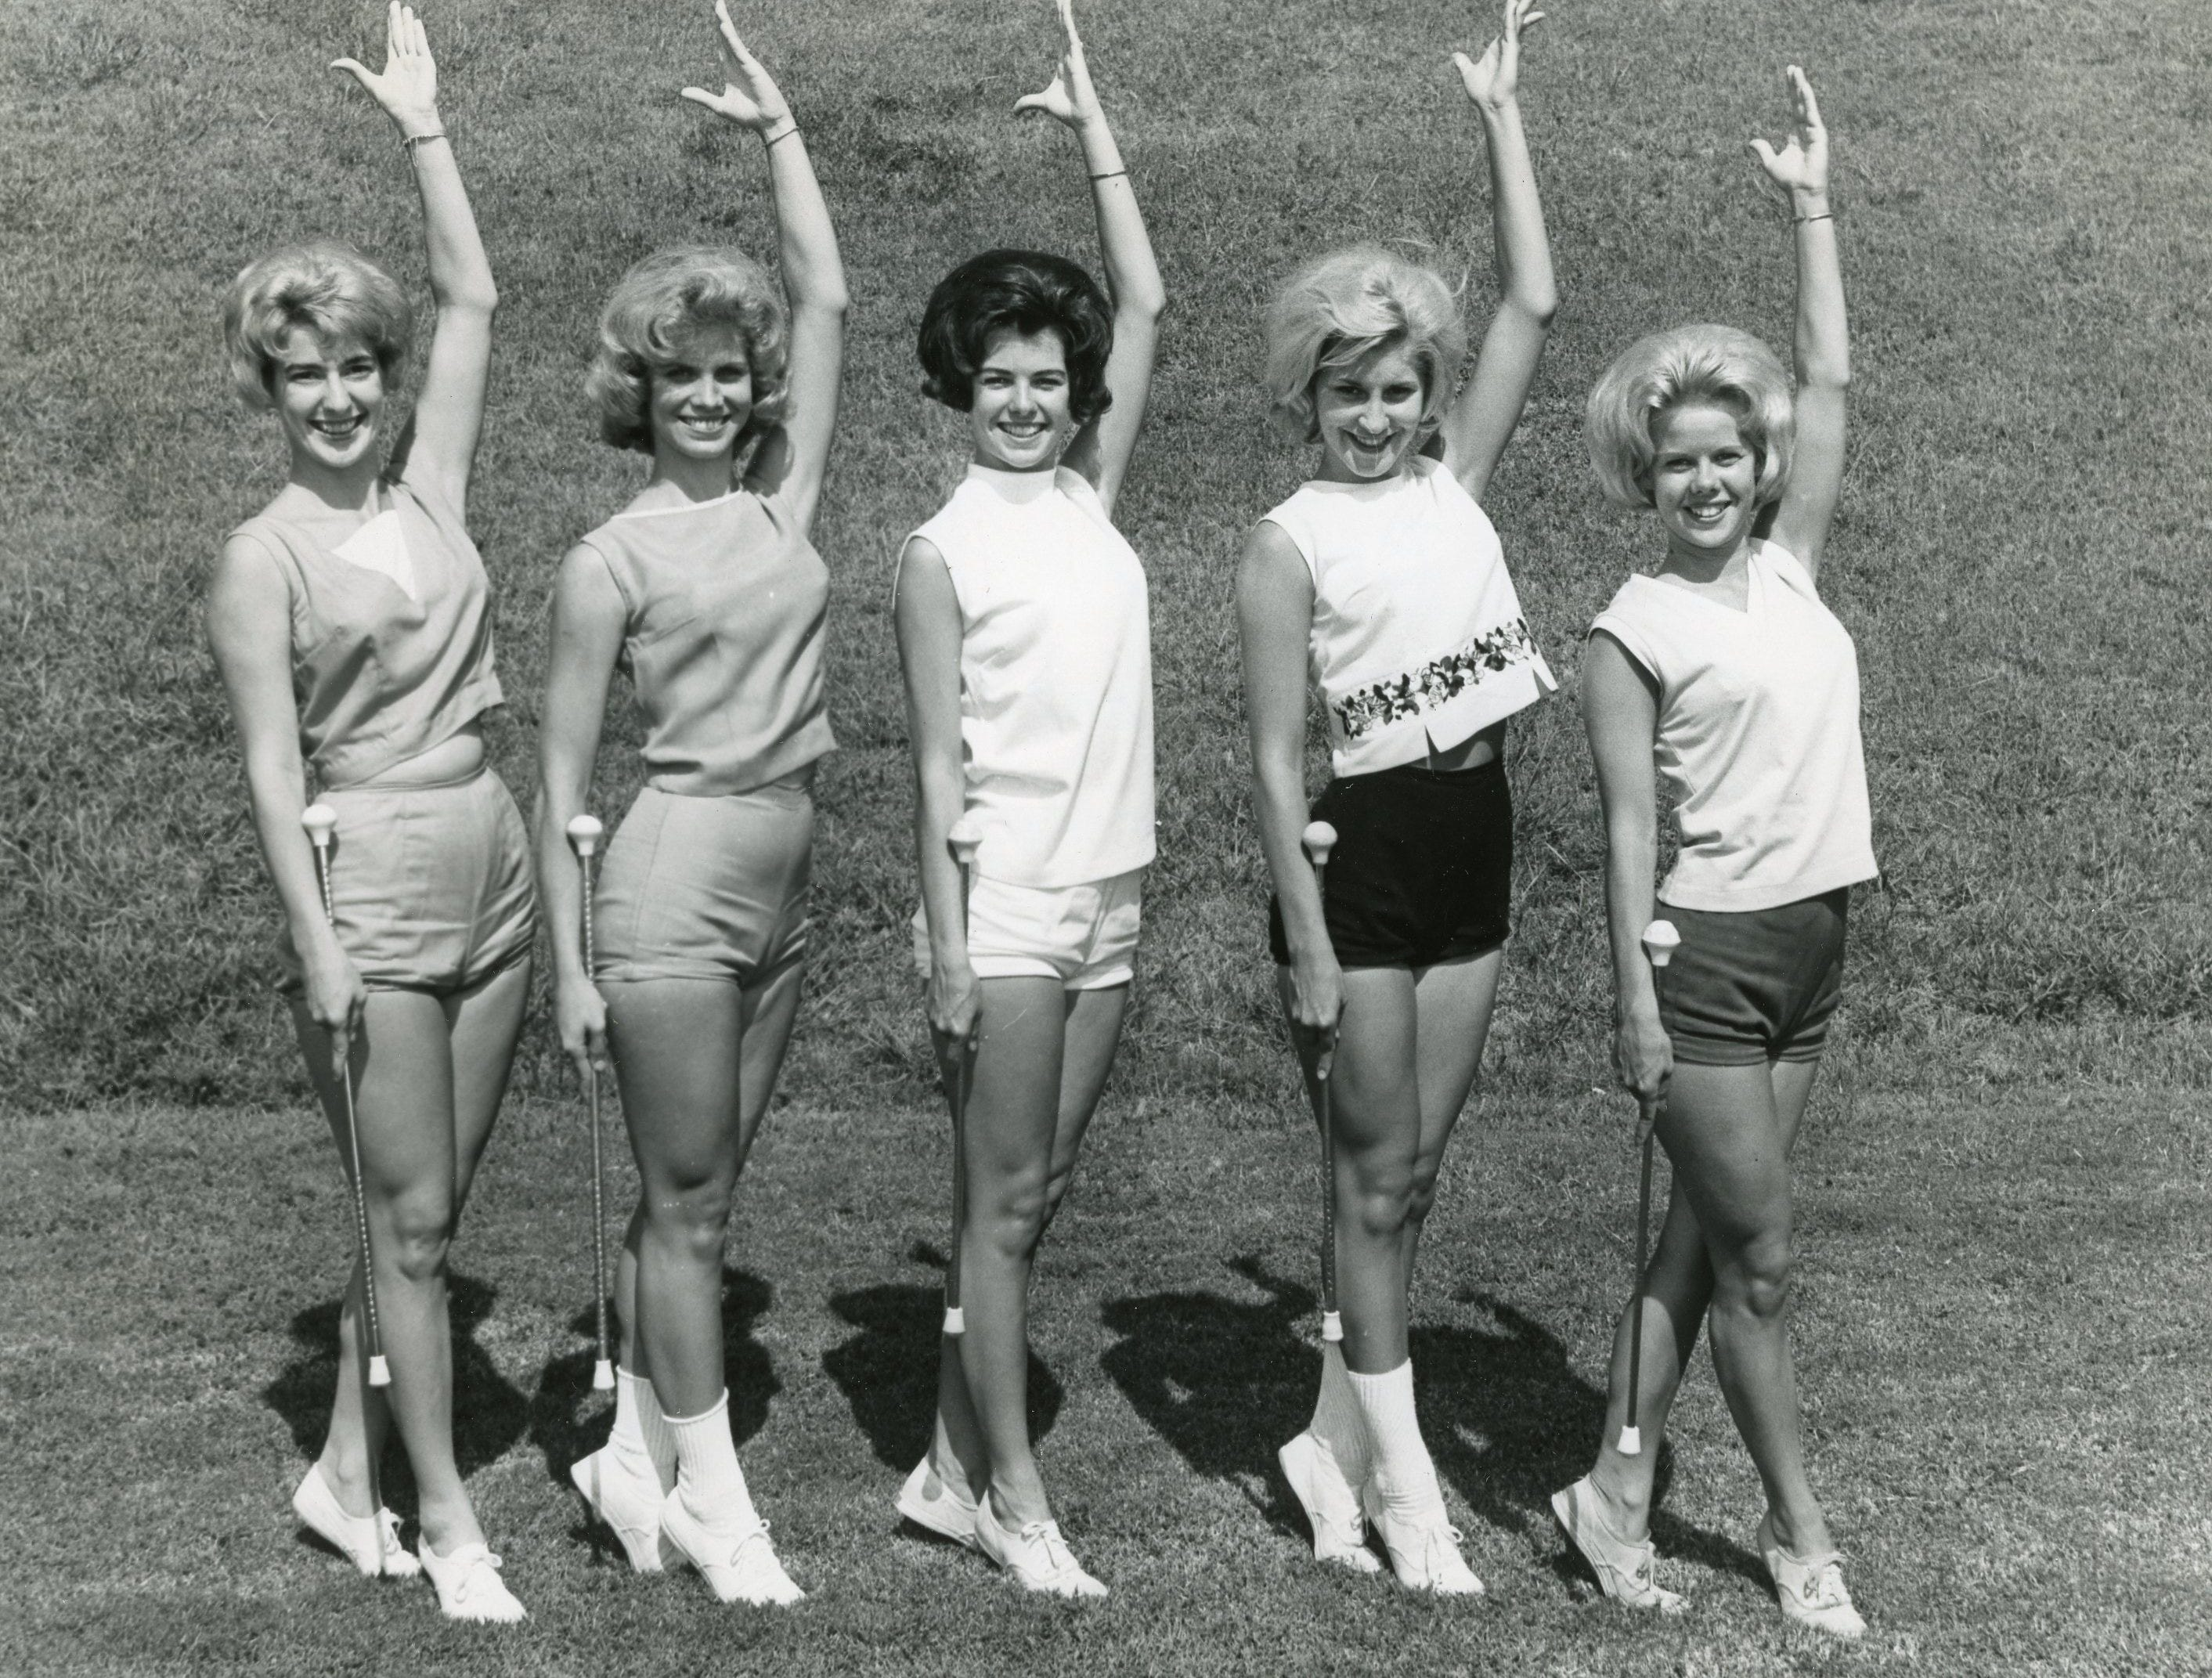 These five UT majorettes twirled for South High School. Pictured are Brenda Flowers, Judy Barton, Bette Carlson, Brenda Murrell and Mary Nicholon. September, 1963.